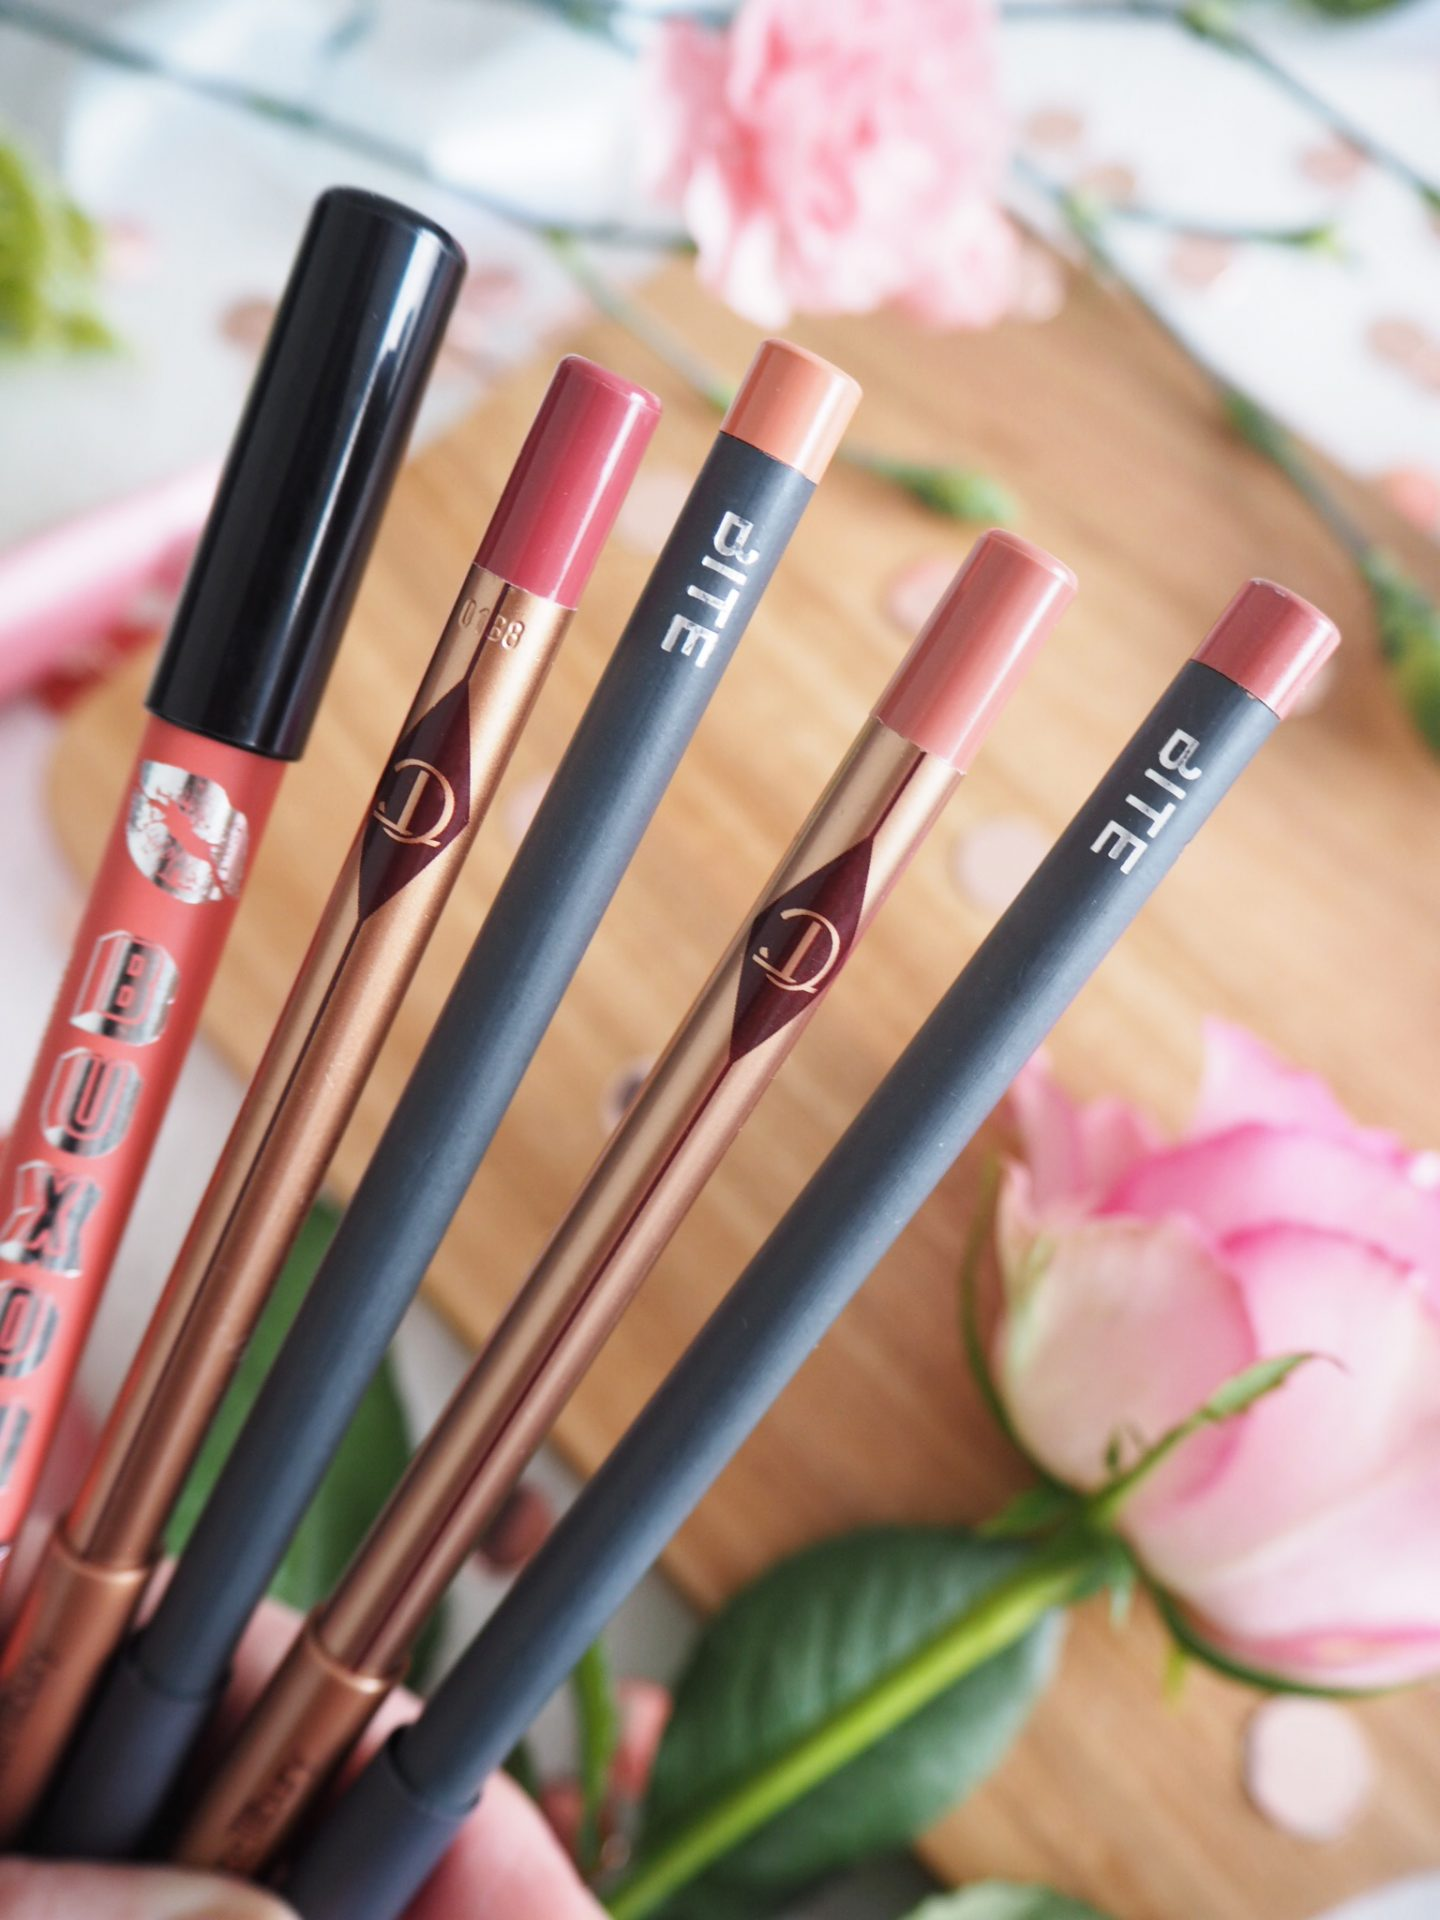 Top five 5 lip liners Buxom Confidential, Bite Beauty 010, Bite Beauty 004, Charlotte Tilbury Pillow Talk, Charlotte Tilbury Bond Girl